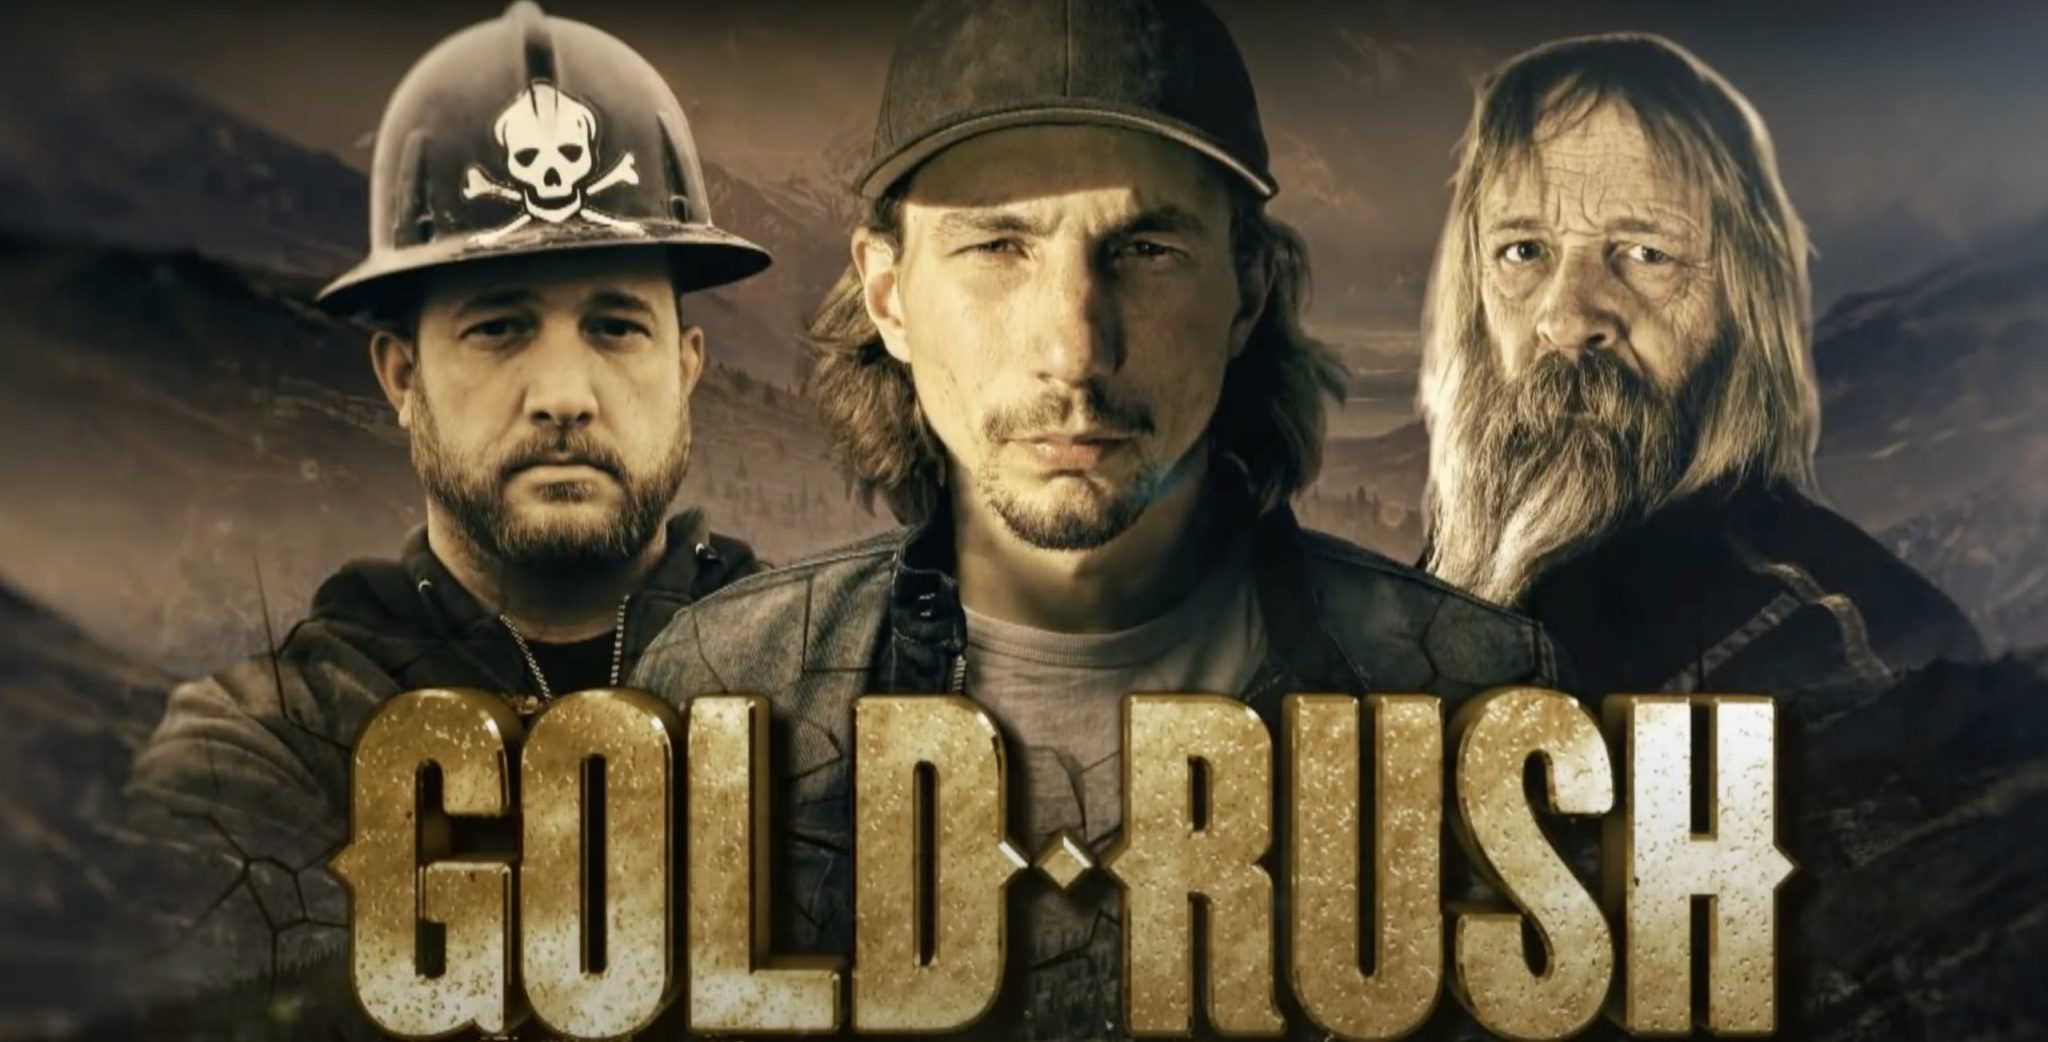 Gold Rush, Discovery, Parker Schnabel, Rick Ness, Tony Beets-https://www.youtube.com/watch?v=h_qRPXyZZ1o